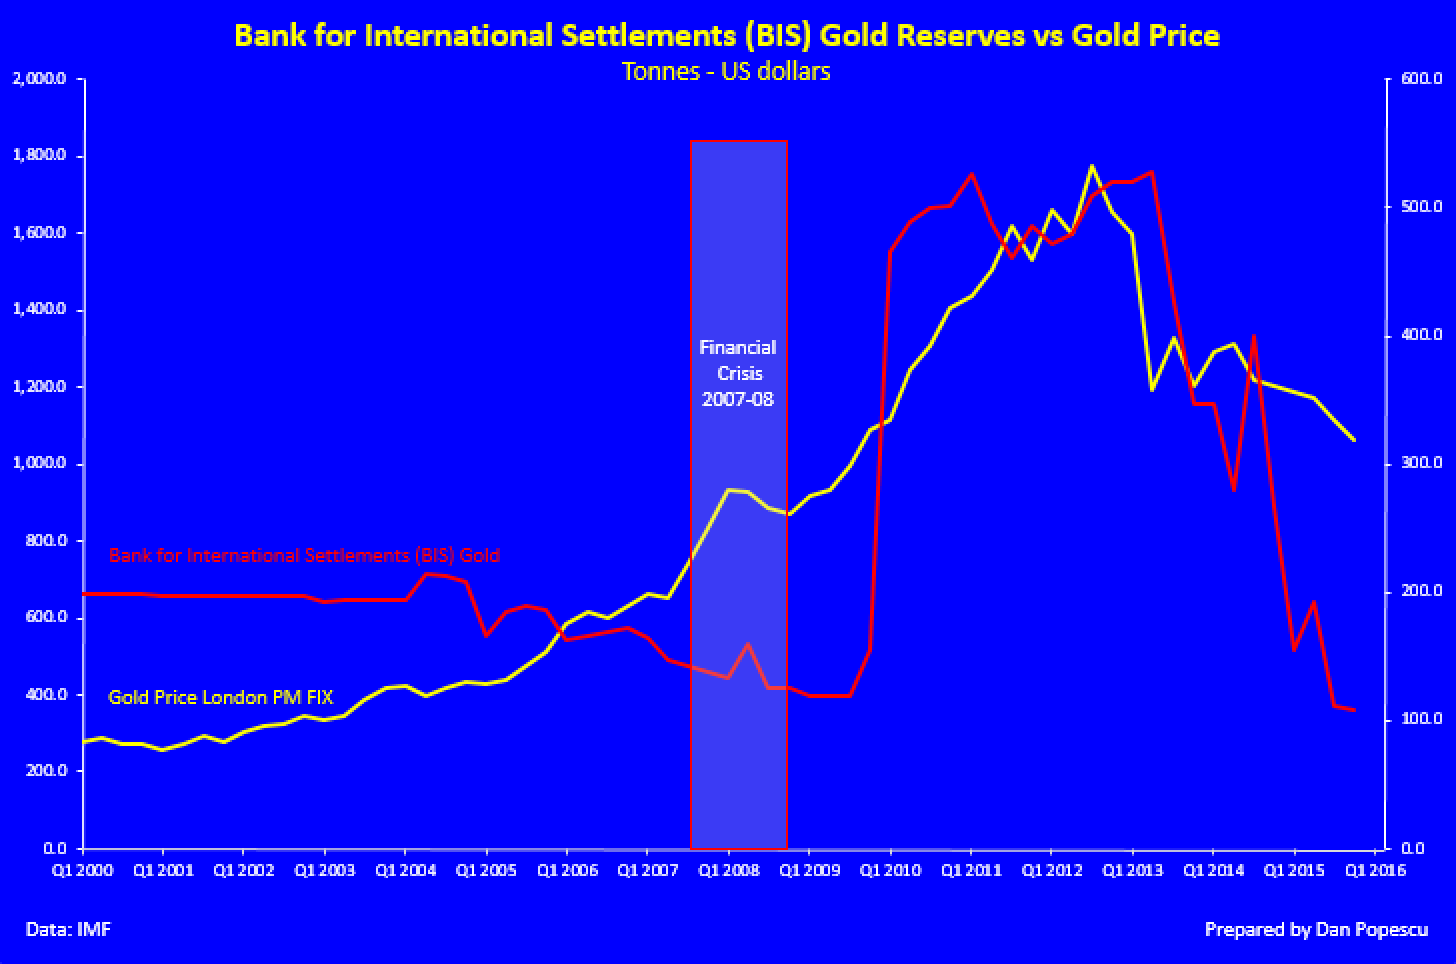 Gold Reserves vs Gold Price